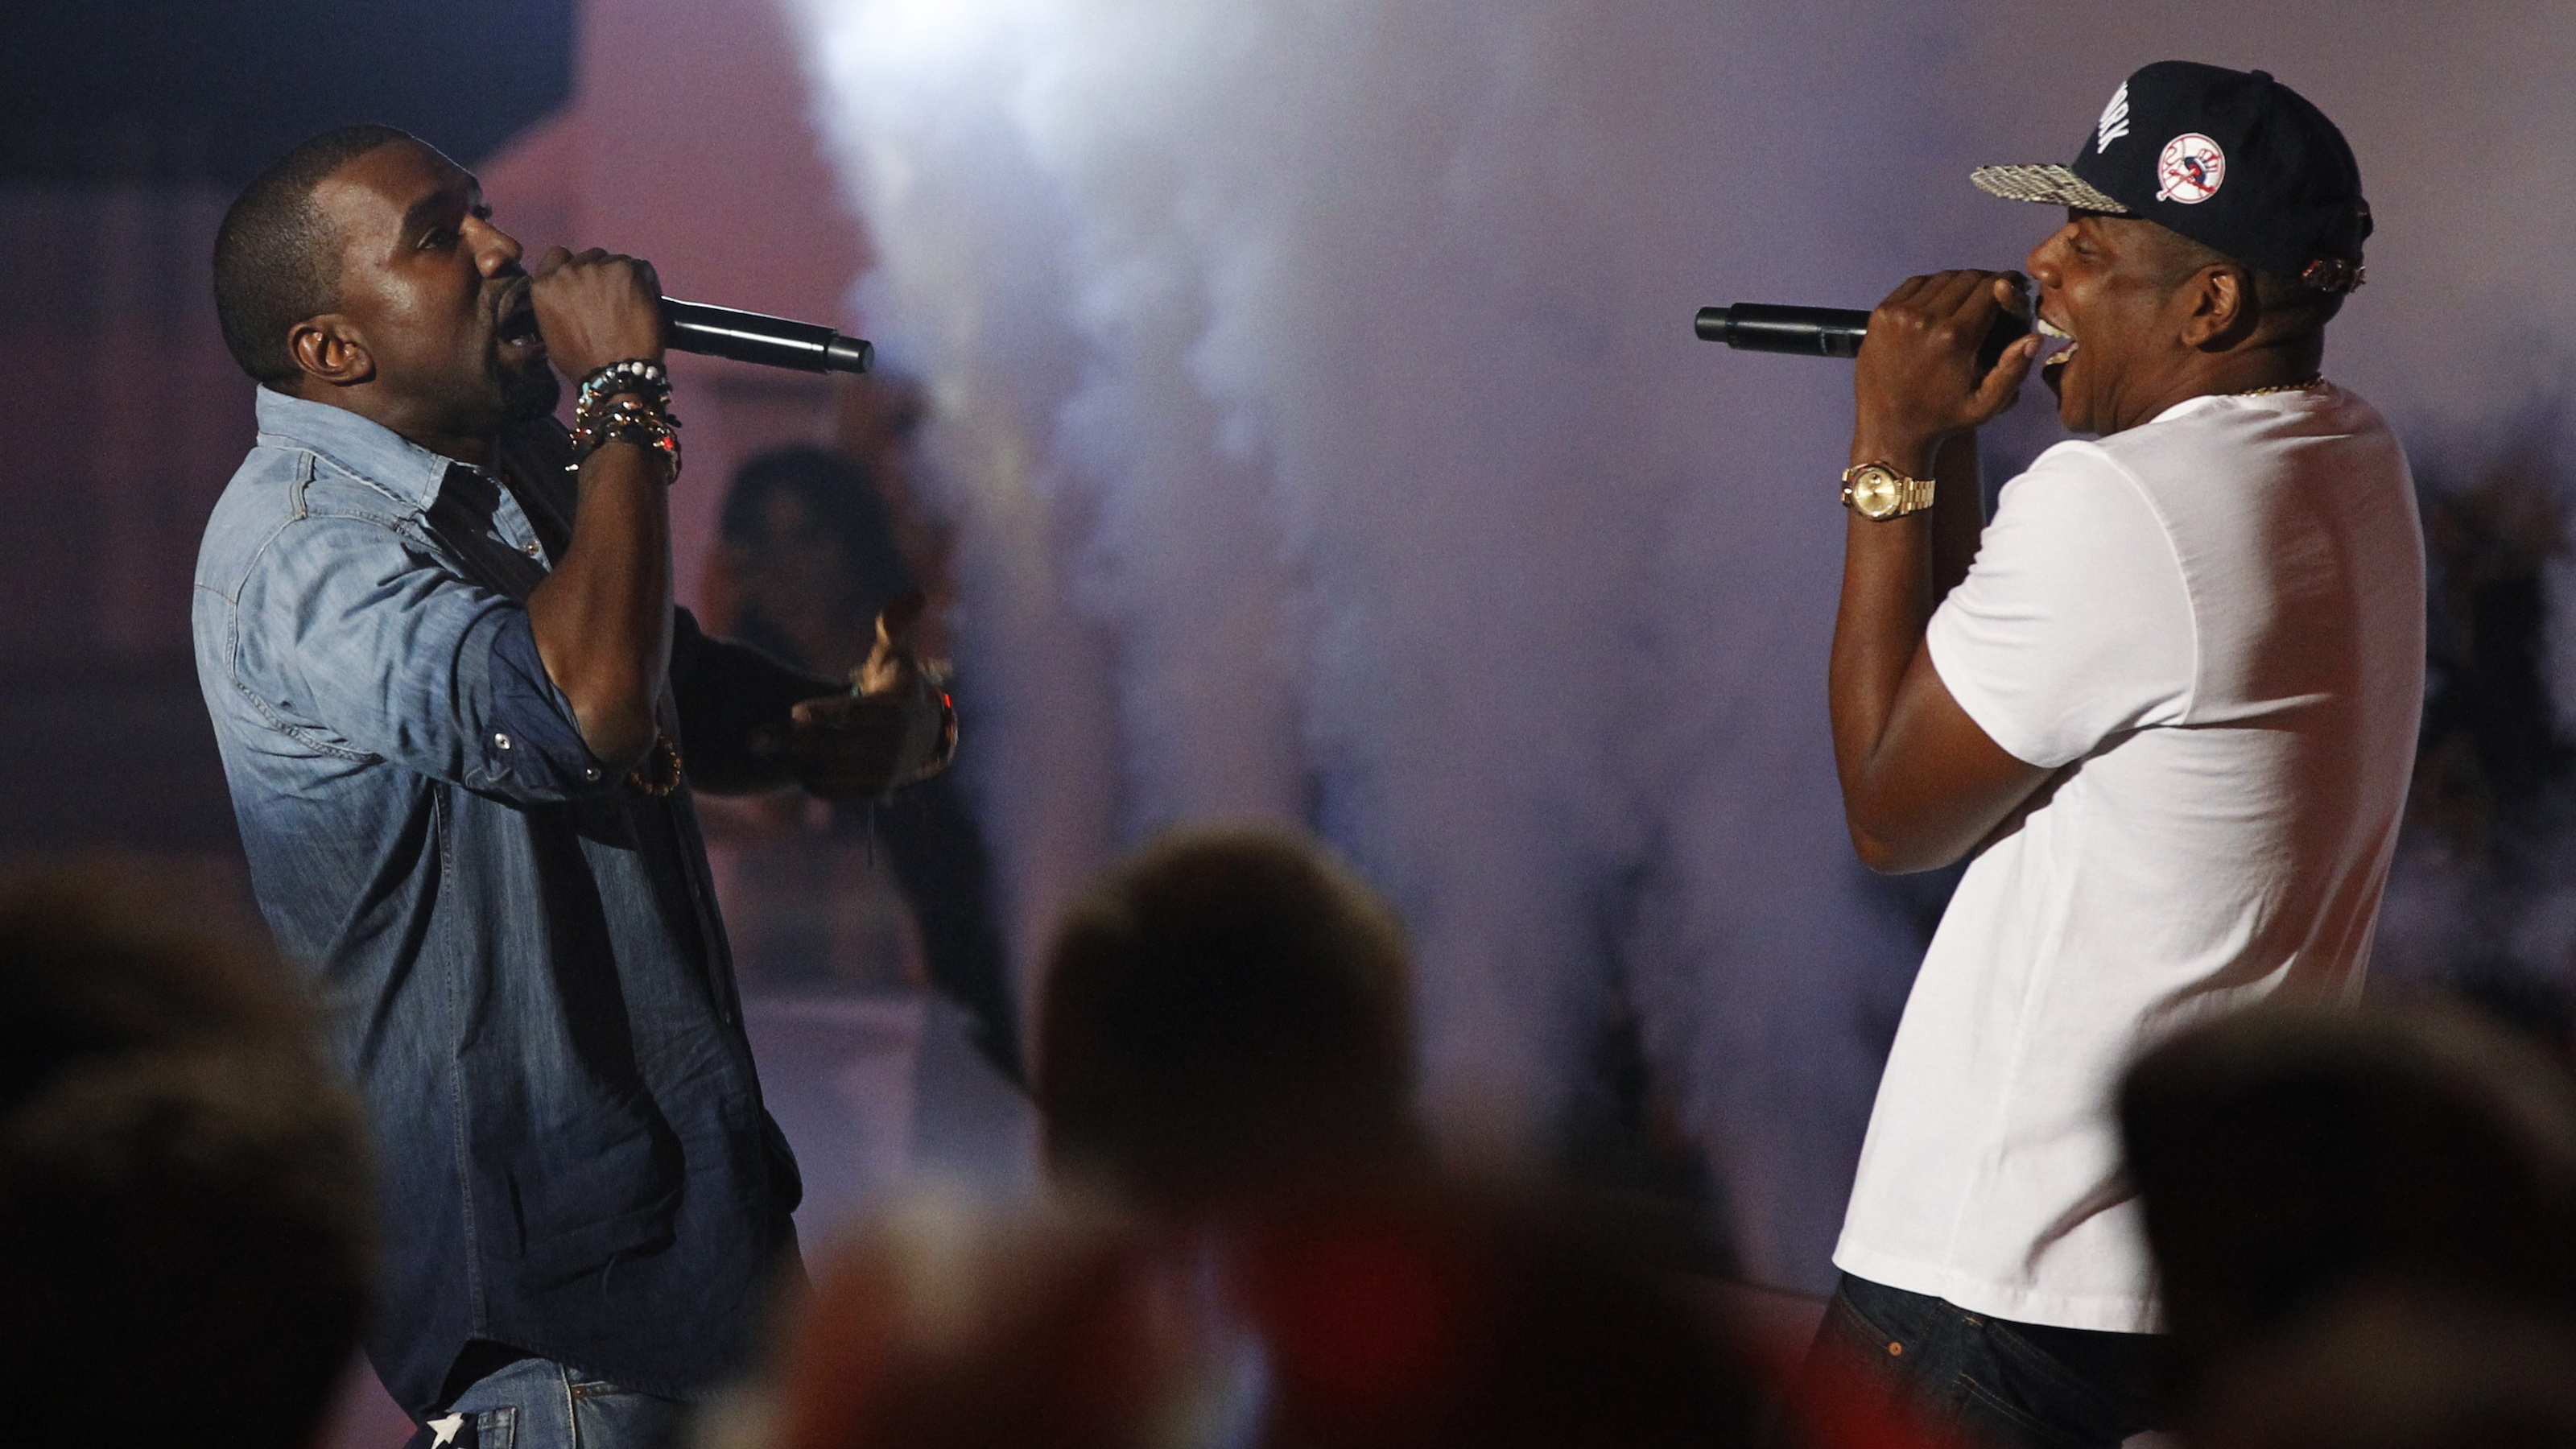 Singers Jay-Z (R) and Kanye West perform at the 2011 MTV Video Music Awards in Los Angeles, August 28, 2011. REUTERS/Mario Anzuoni (UNITED STATES - Tags: ENTERTAINMENT) (MTV-SHOW) - RTR2QGYZ